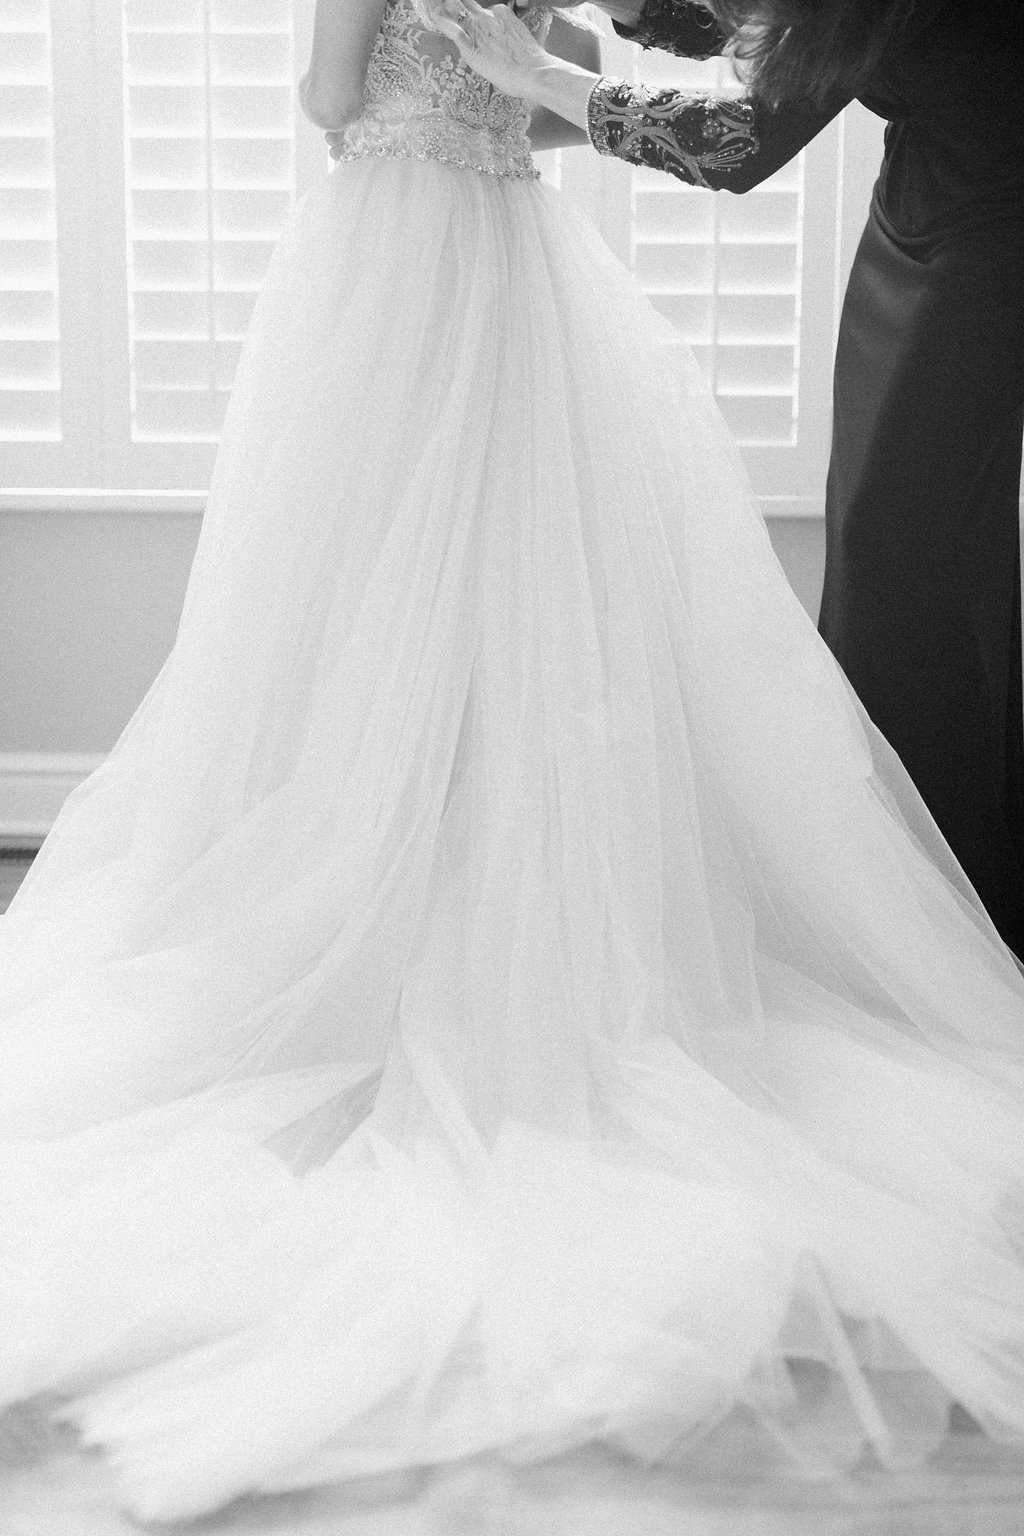 black and white photograph of wedding dress tulle